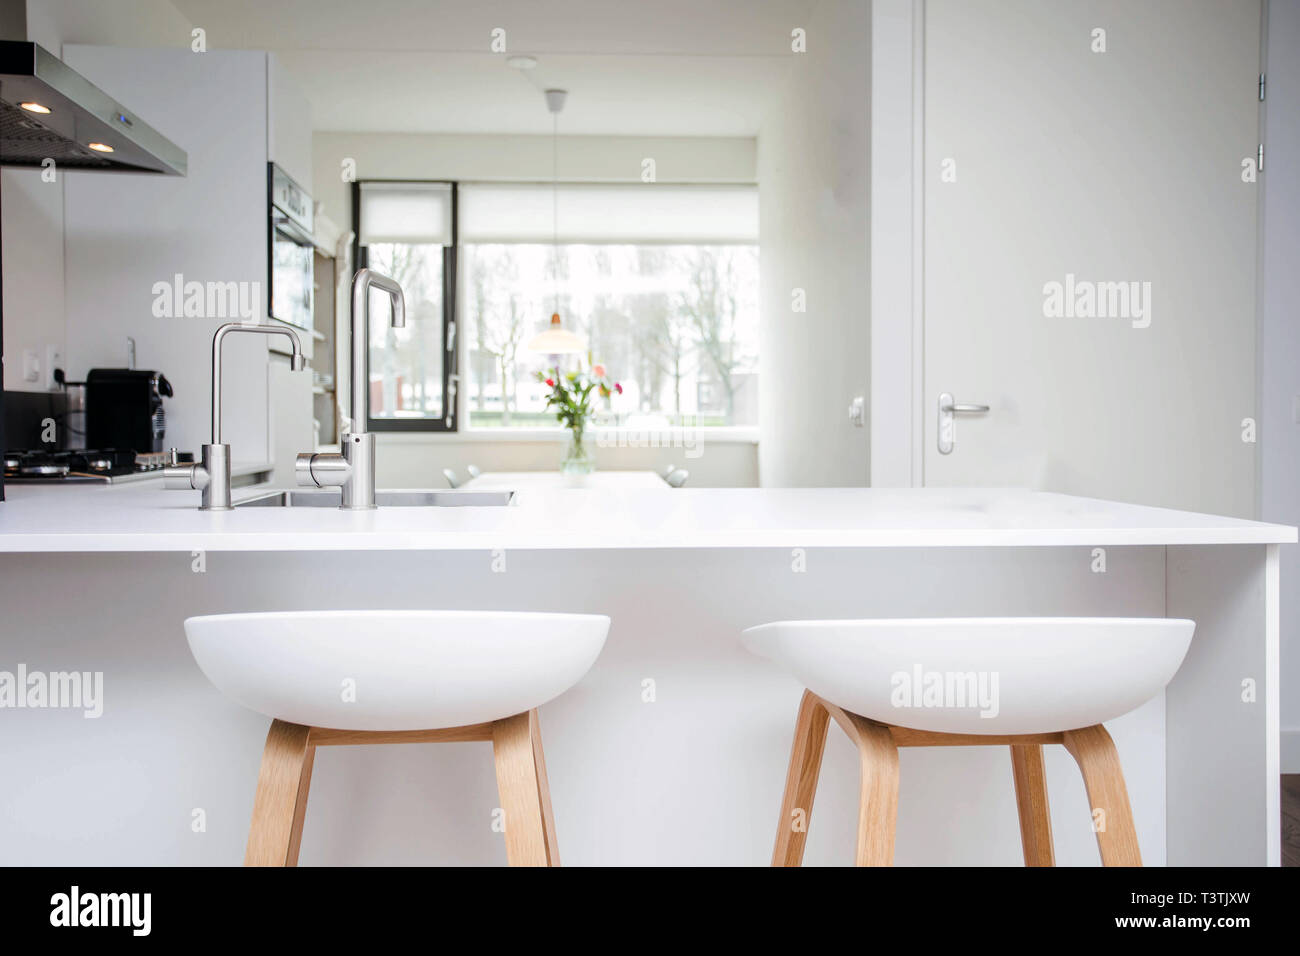 Bar Stools By Modern White Kitchen Island New And Clean Modern Design Stock Photo Alamy